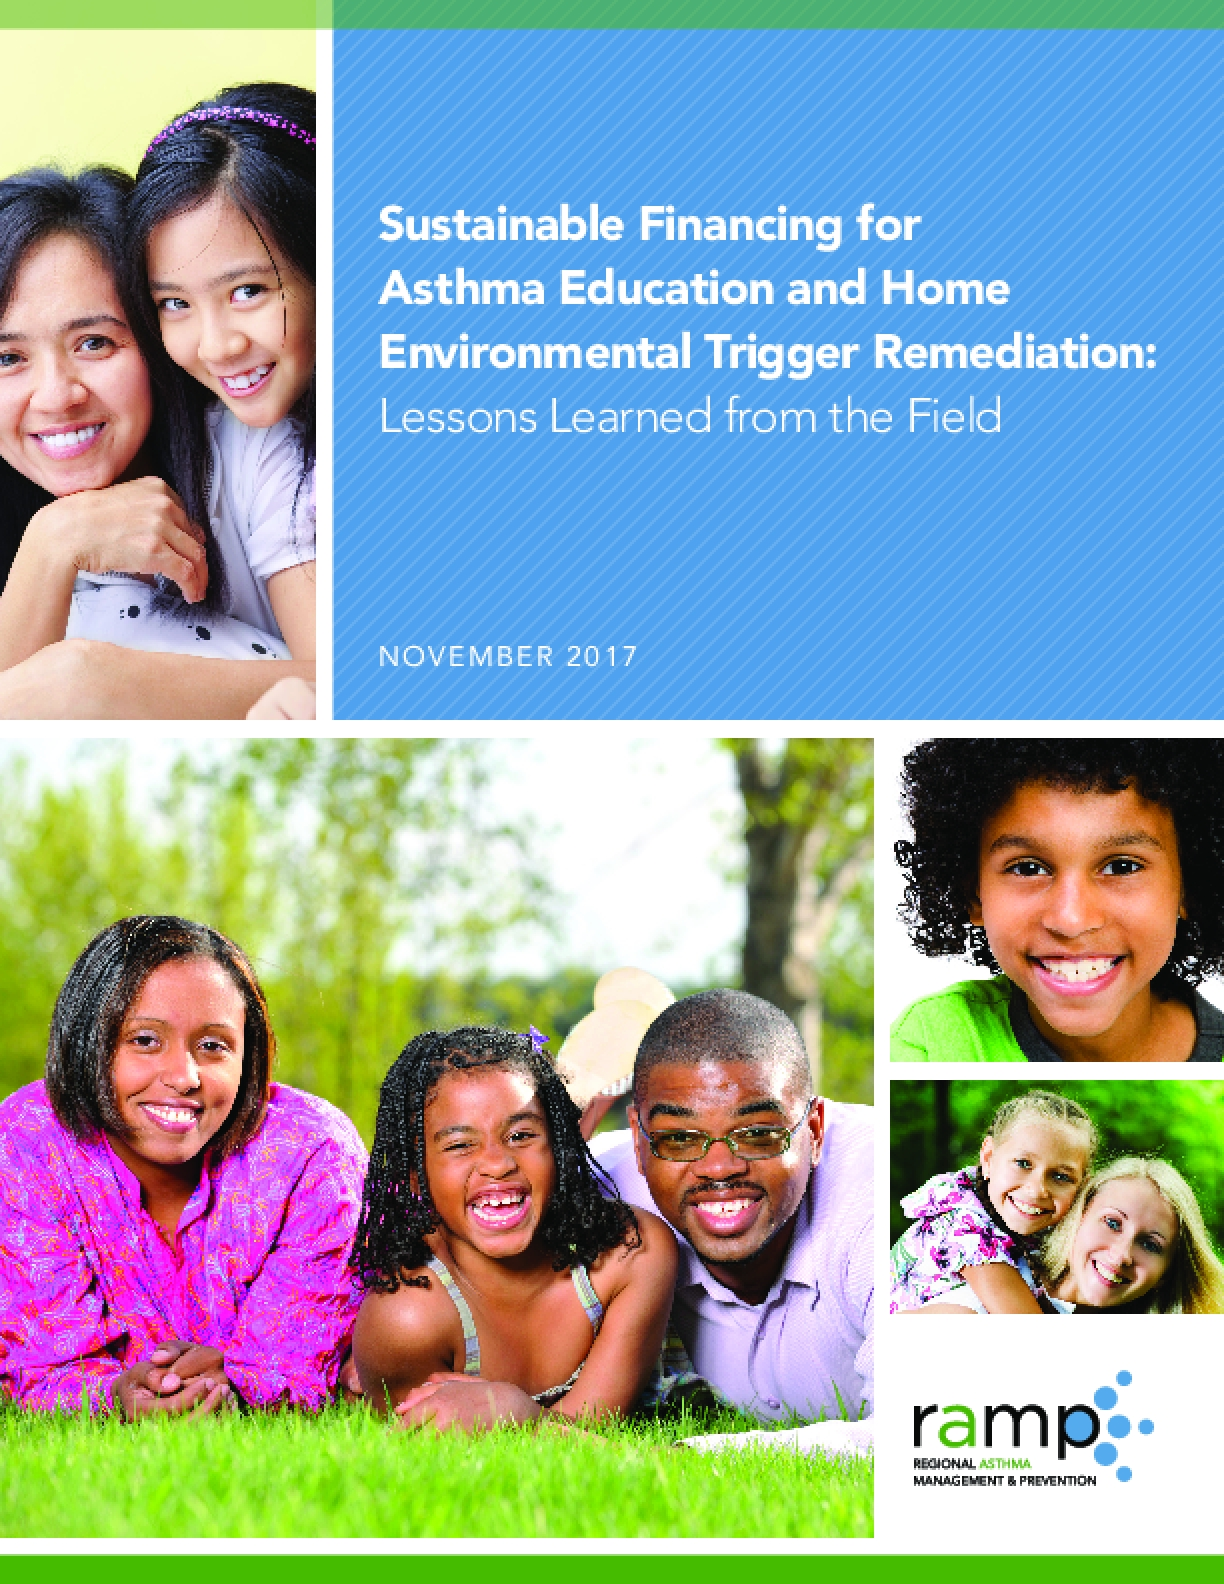 Sustainable Financing for Asthma Education and Home Environmental Trigger Remediation: Lessons Learned from Regional Asthma Management & Prevention